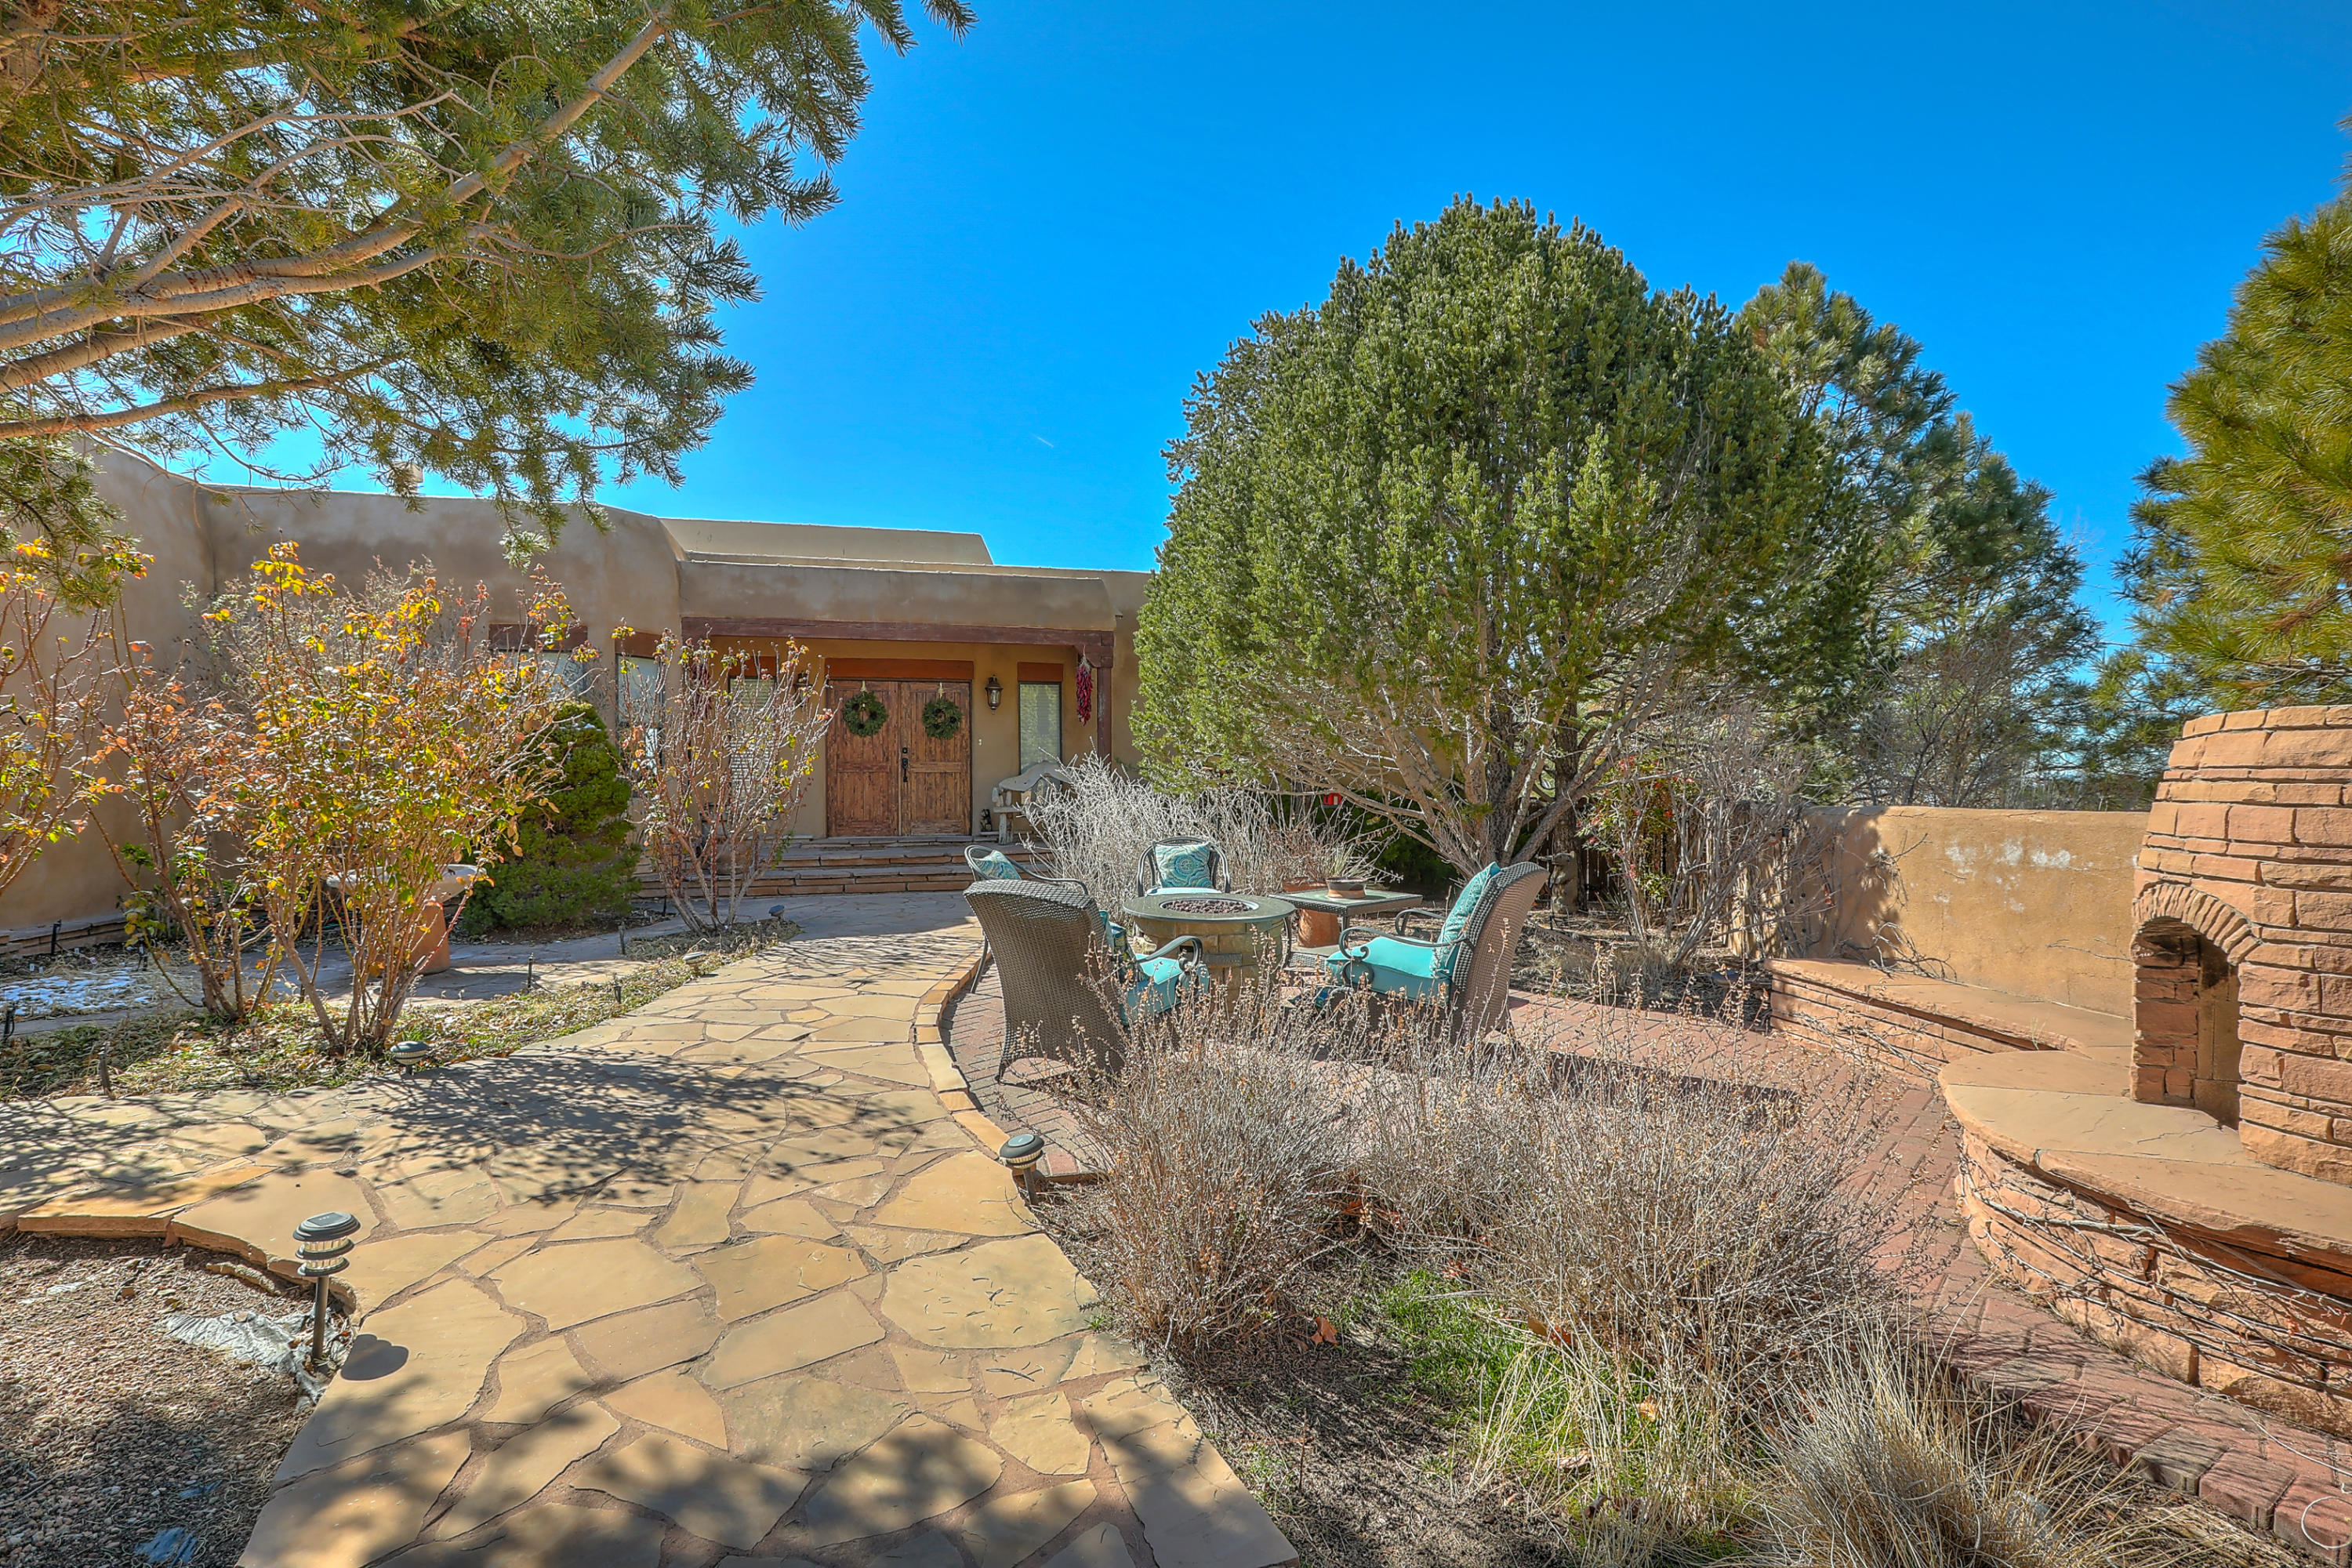 10800 CARMEL Avenue NE Property Photo - Albuquerque, NM real estate listing